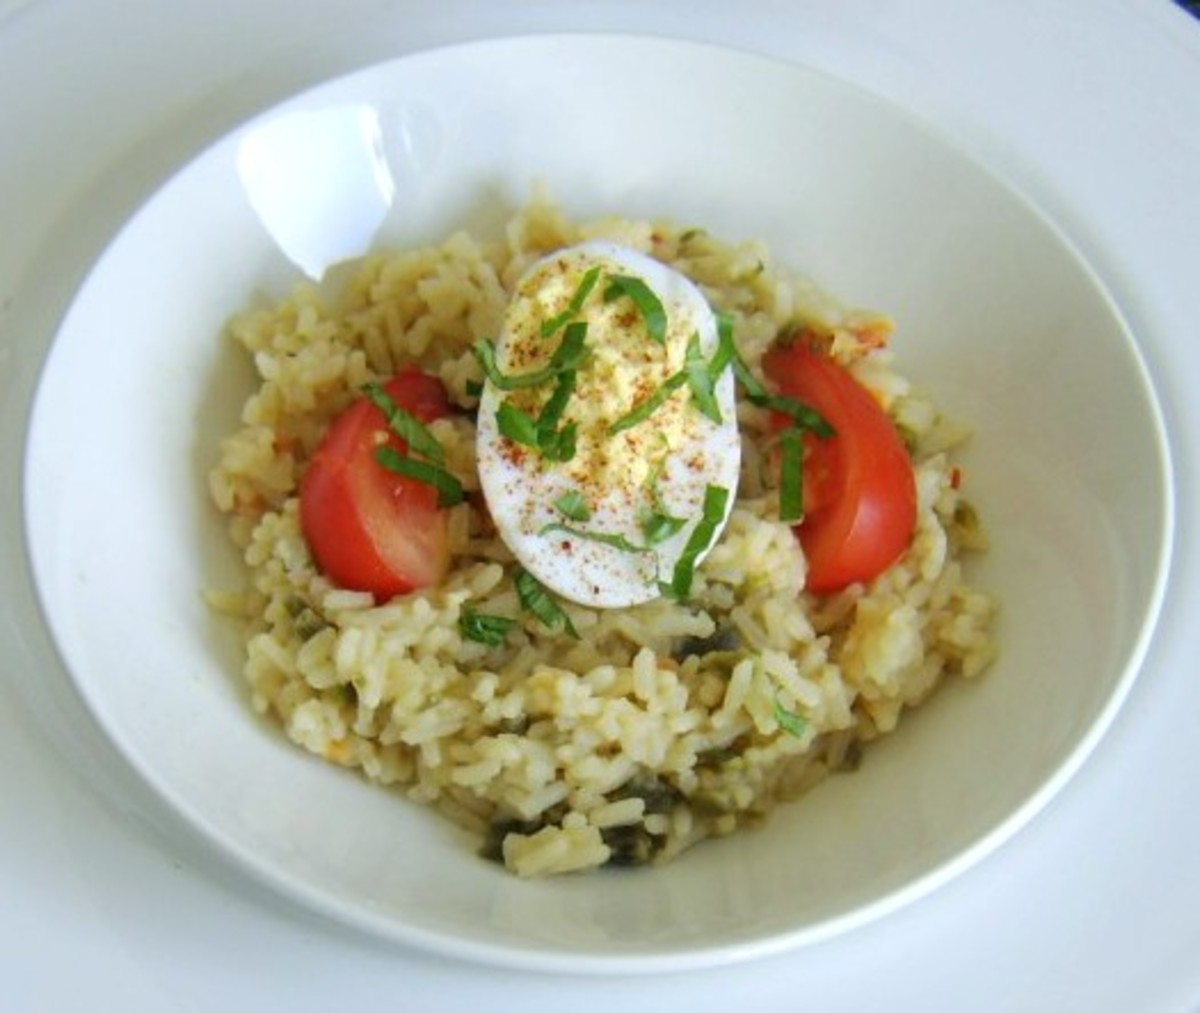 Turmeric and garlic deviled duck egg is served on a bed of Indian spiced rice